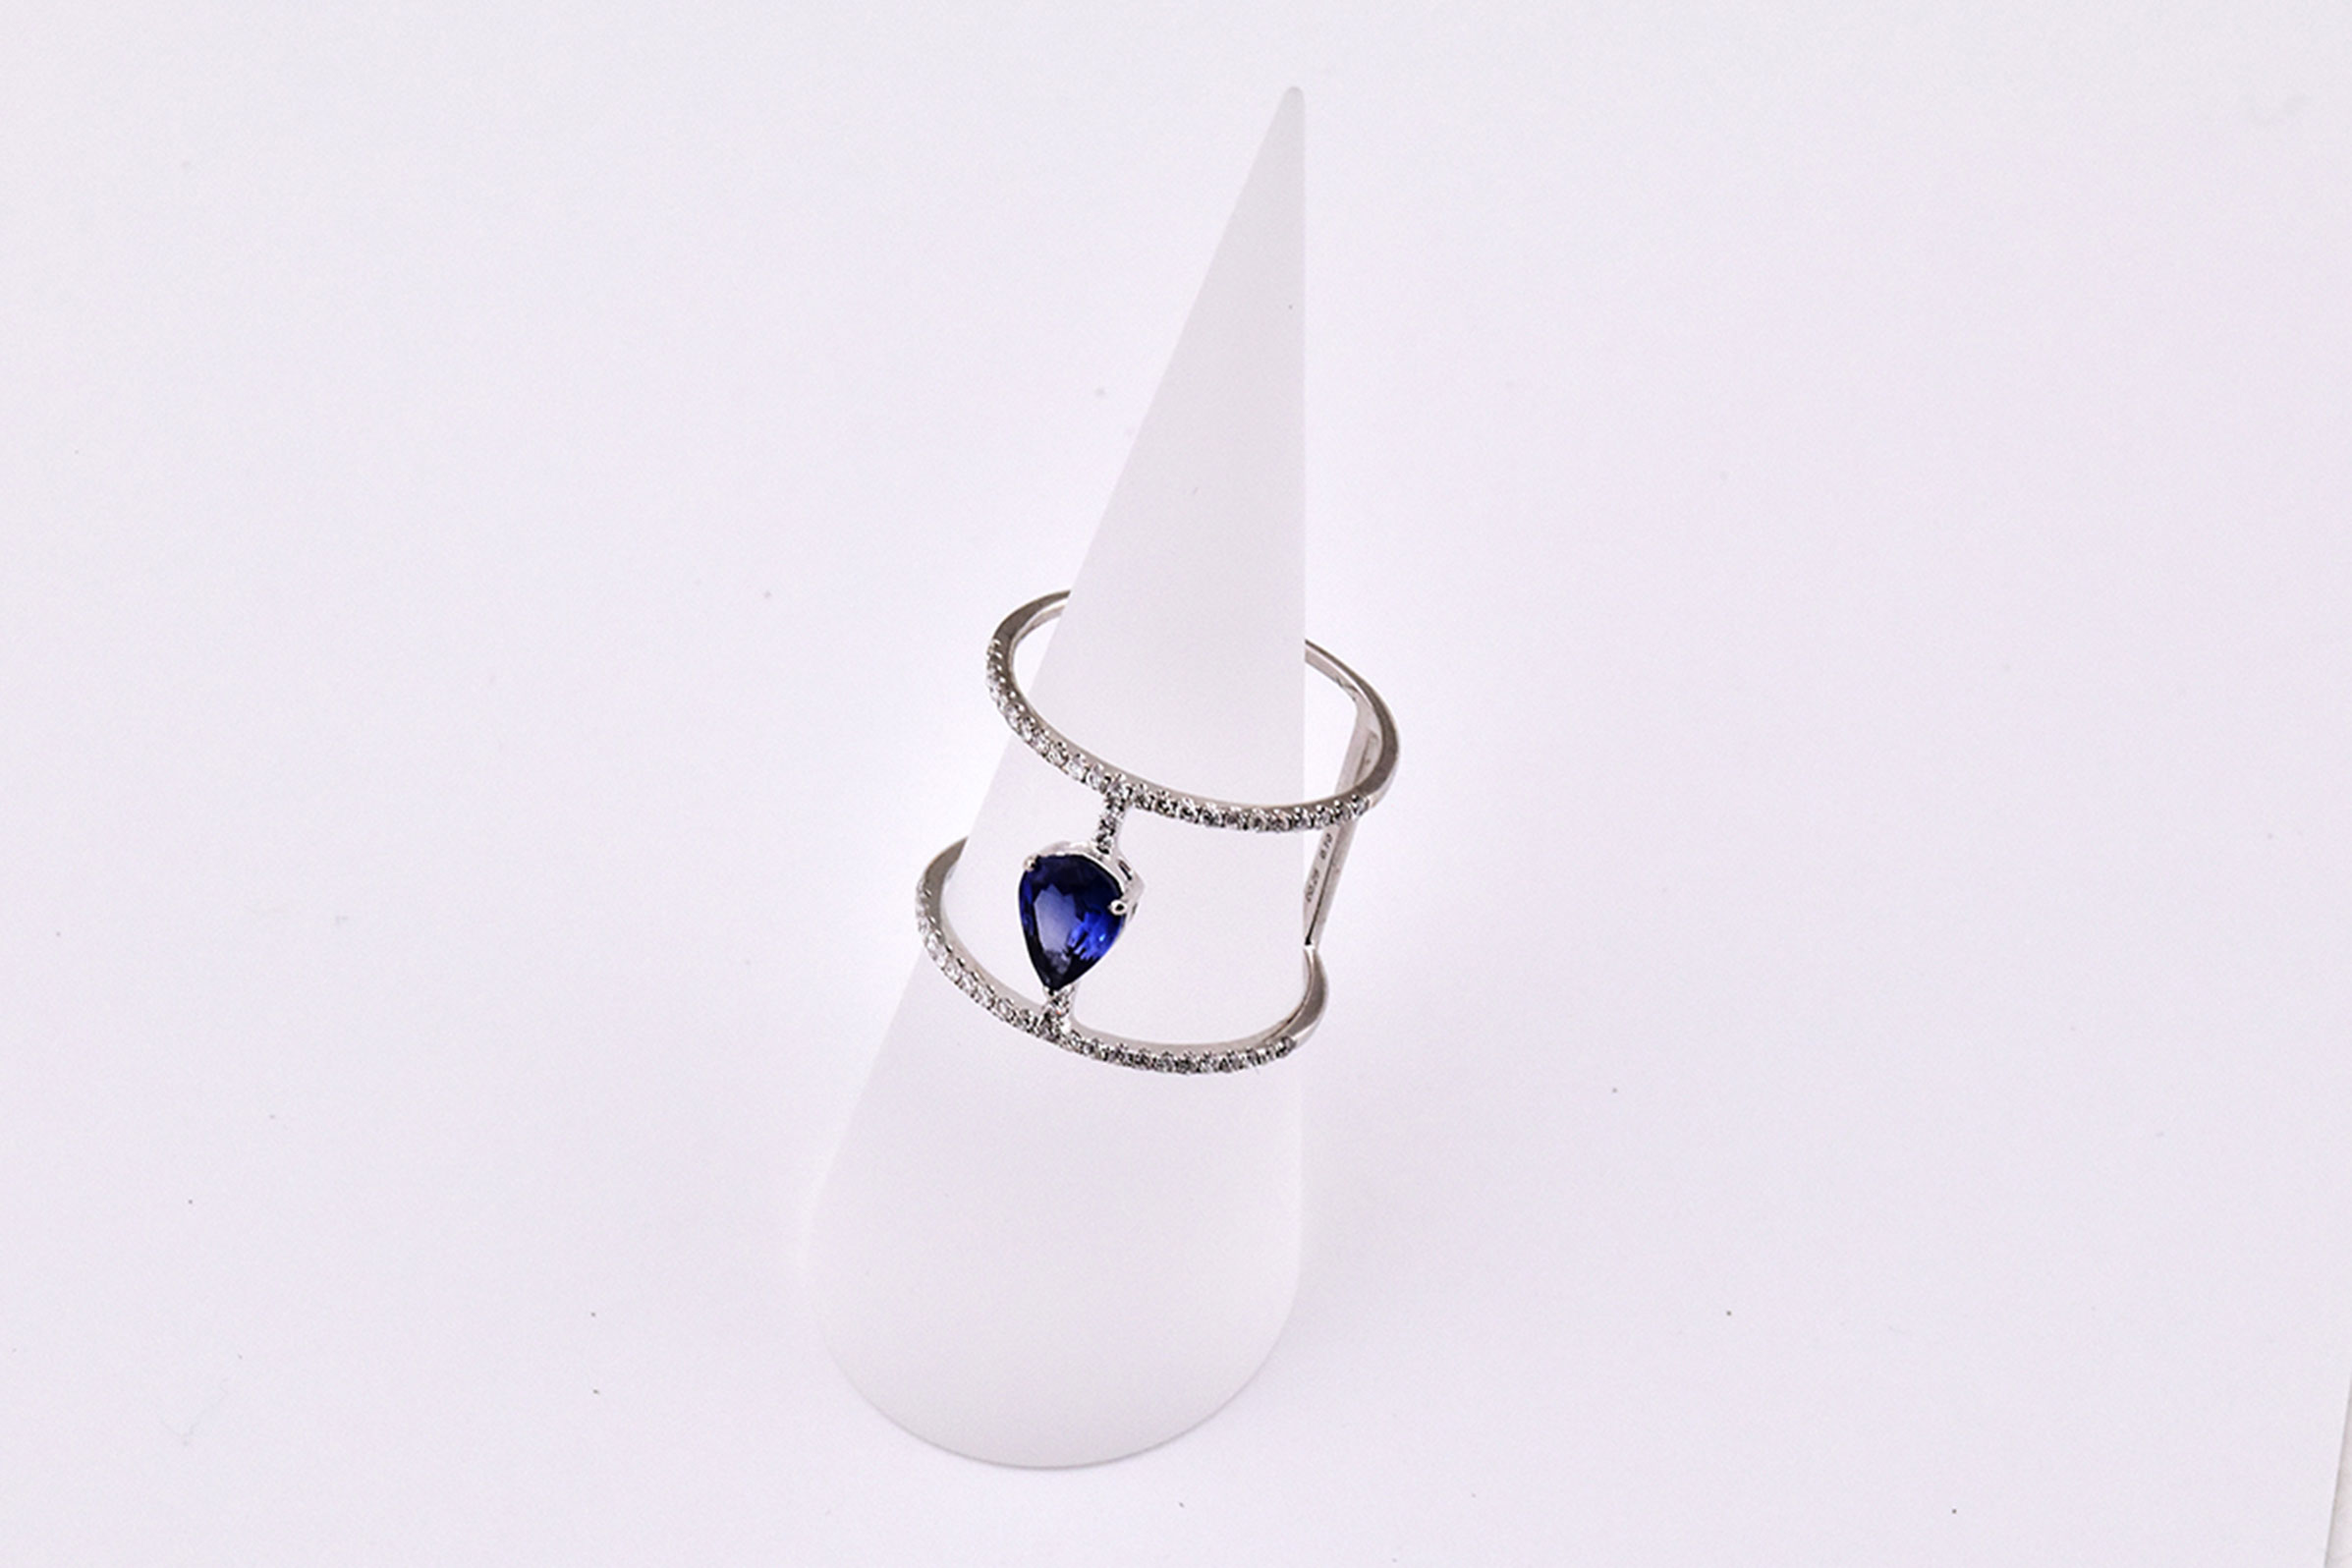 Over Half Carats Sapphire Diamond Cocktail Ring